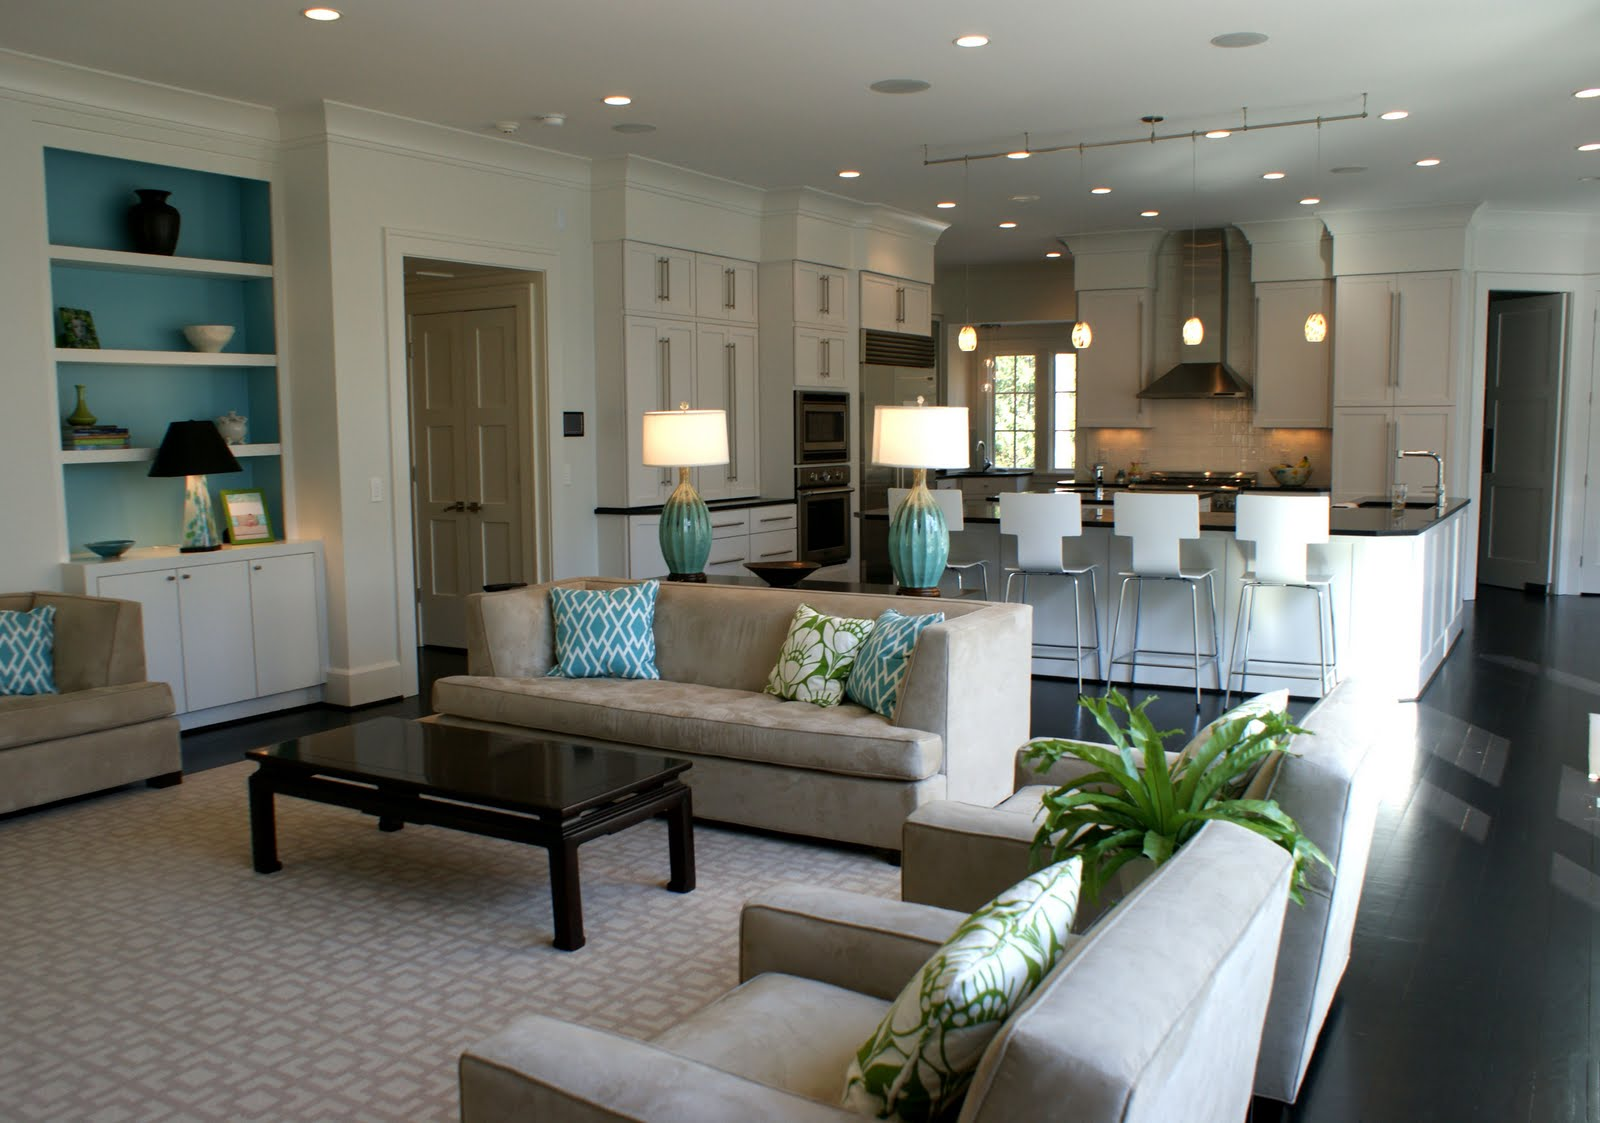 ... Kitchen Family Room Ideas Inspire Me May 2011 ...